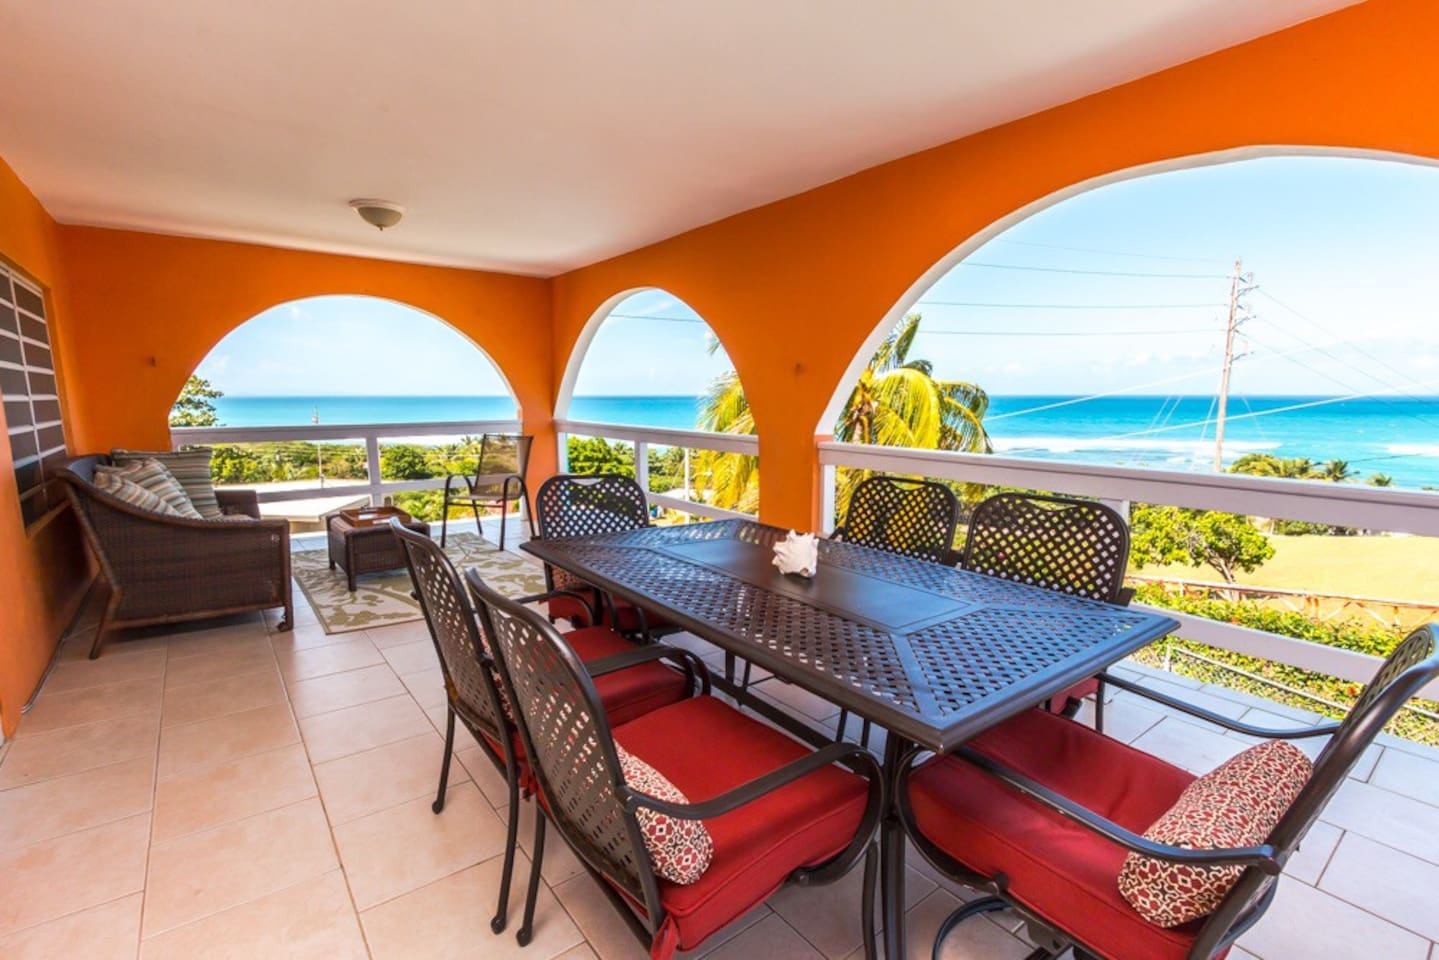 Breezy outdoor living and dining room surrounded by the turquoise sea.  180-degree water views!